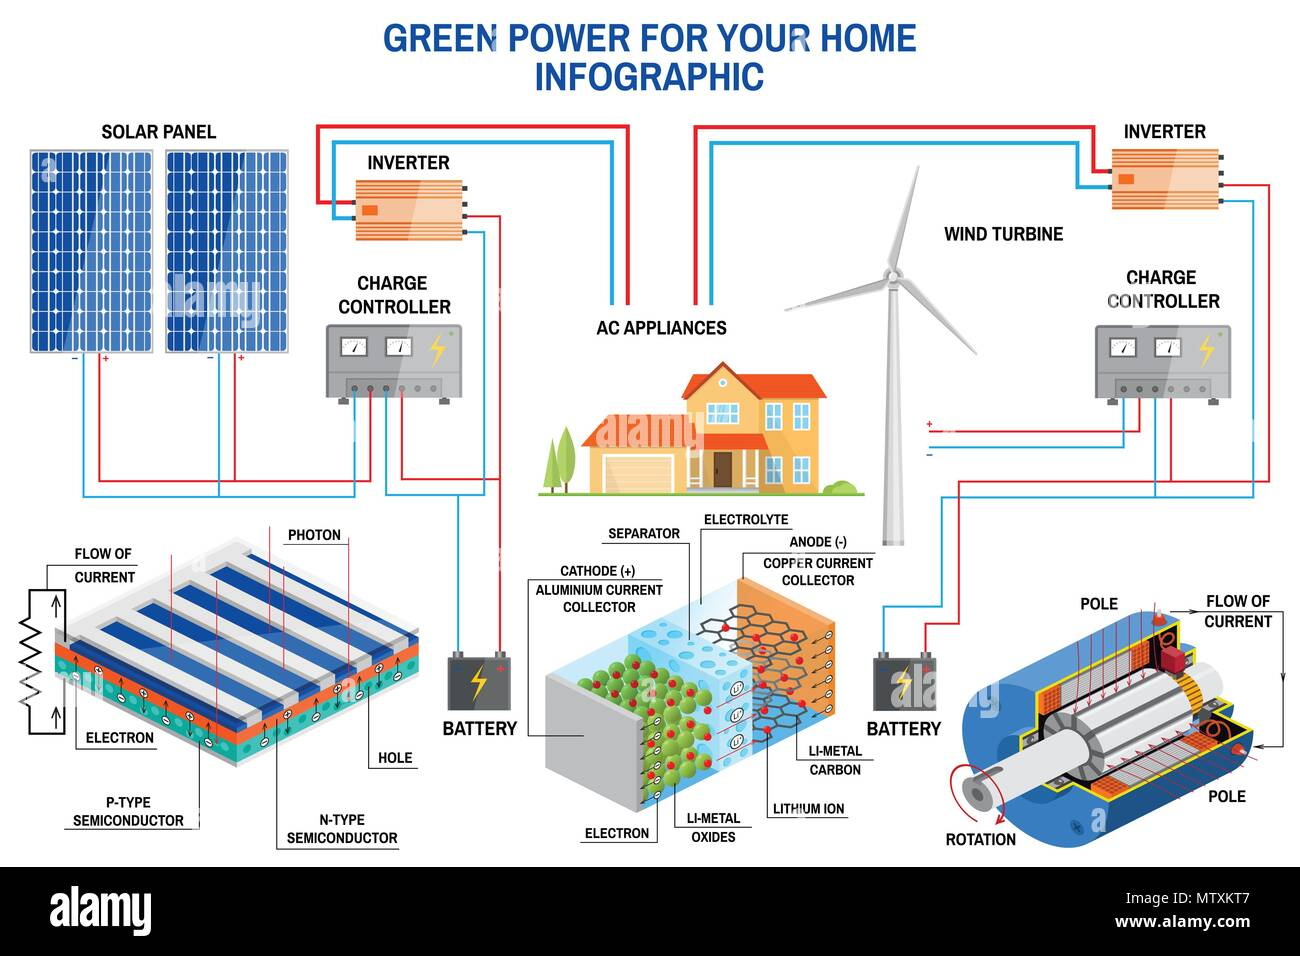 Incredible Solar Panel And Wind Power Generation System For Home Infographic Wiring Cloud Mangdienstapotheekhoekschewaardnl